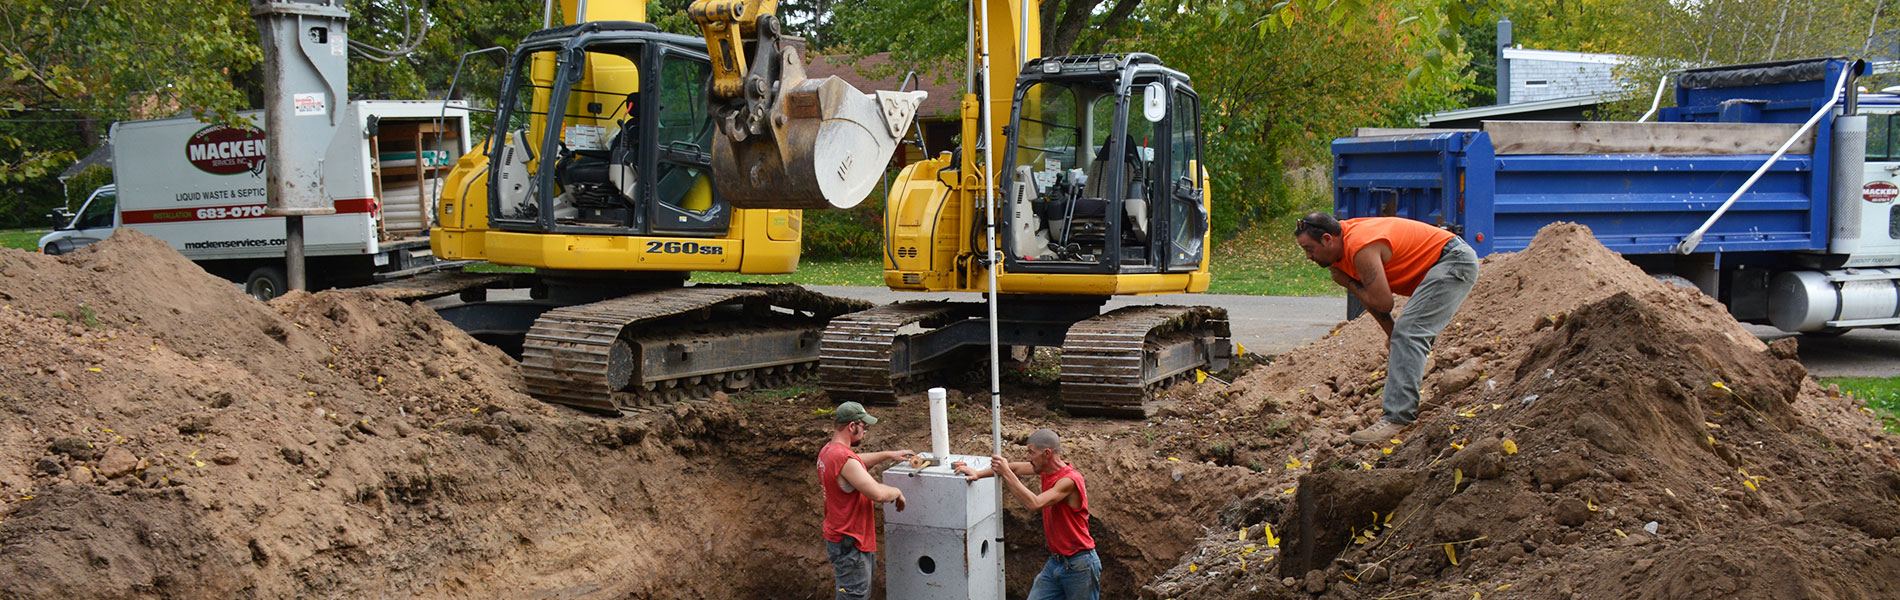 Septic Systems in Lancaster, NY | Septic Tank Cleaning Service